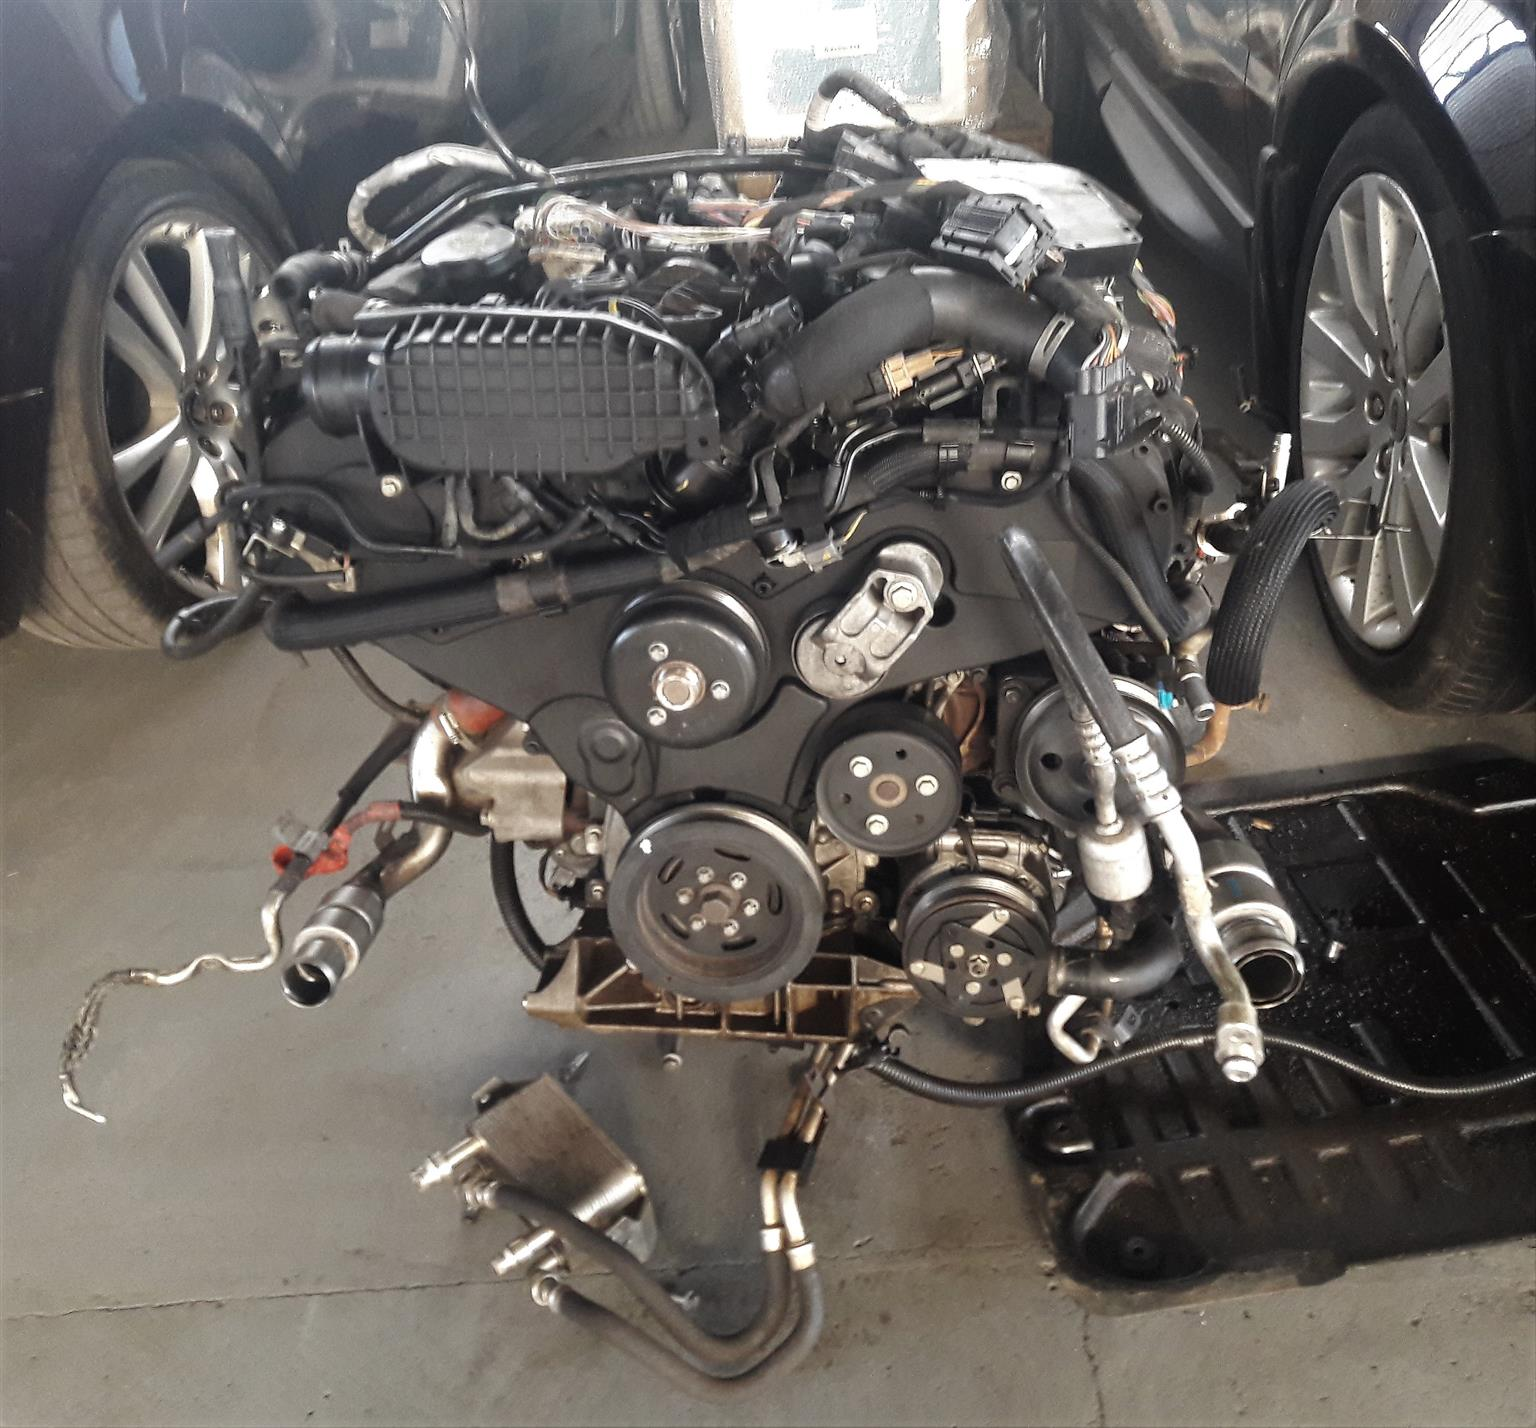 Land Rover Discovery 4 TDV6 3 Liter Engine for sale | AUTO EZI